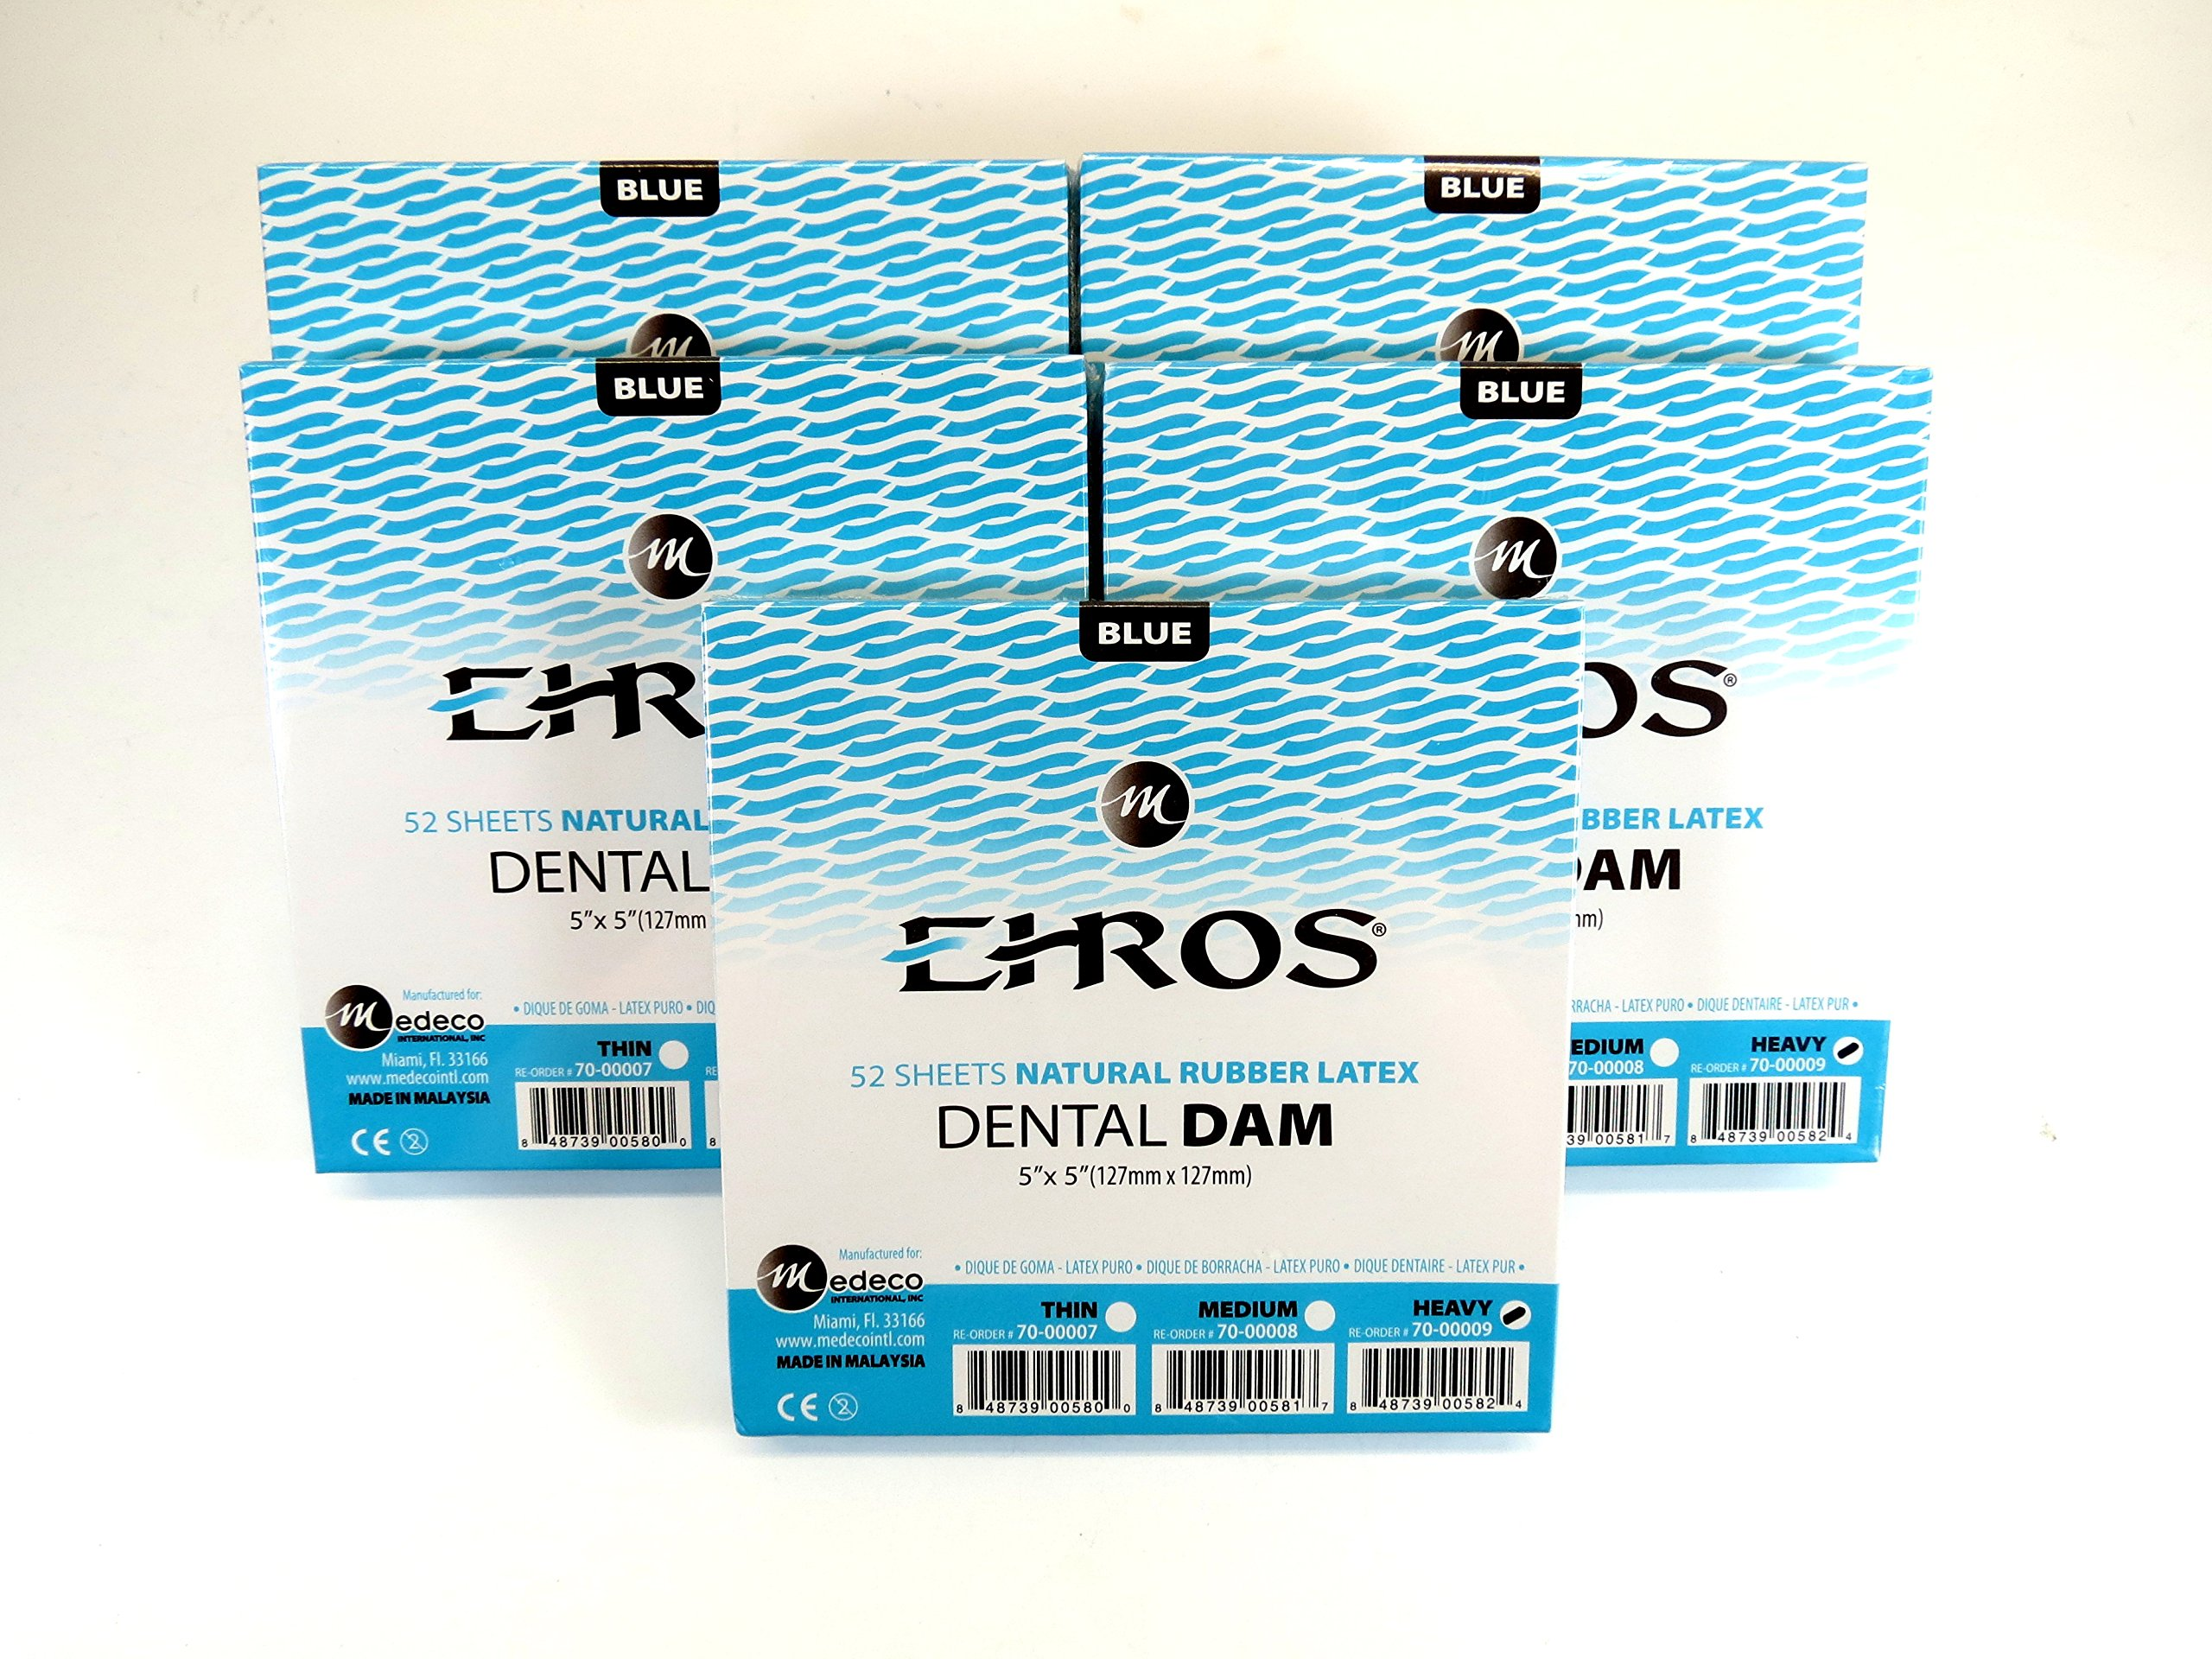 Rubber Dental Dam 5''x 5'' Heavy Blue Kit / 5 Box Latex 52 Sheets Dique De Goma Natural EHROS